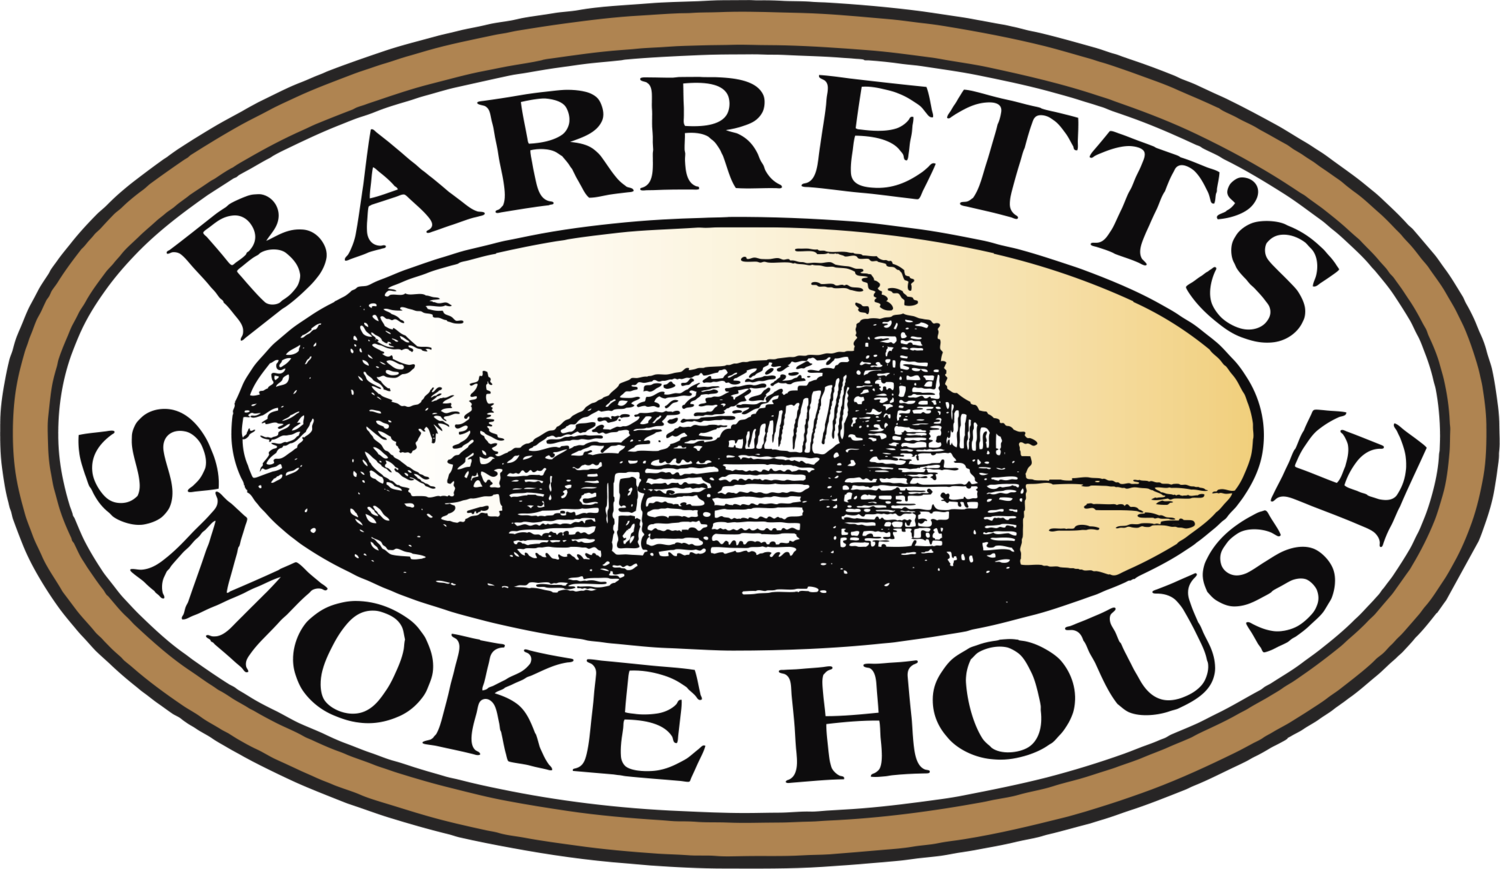 Barretts smokehouse . Ham clipart thick sliced